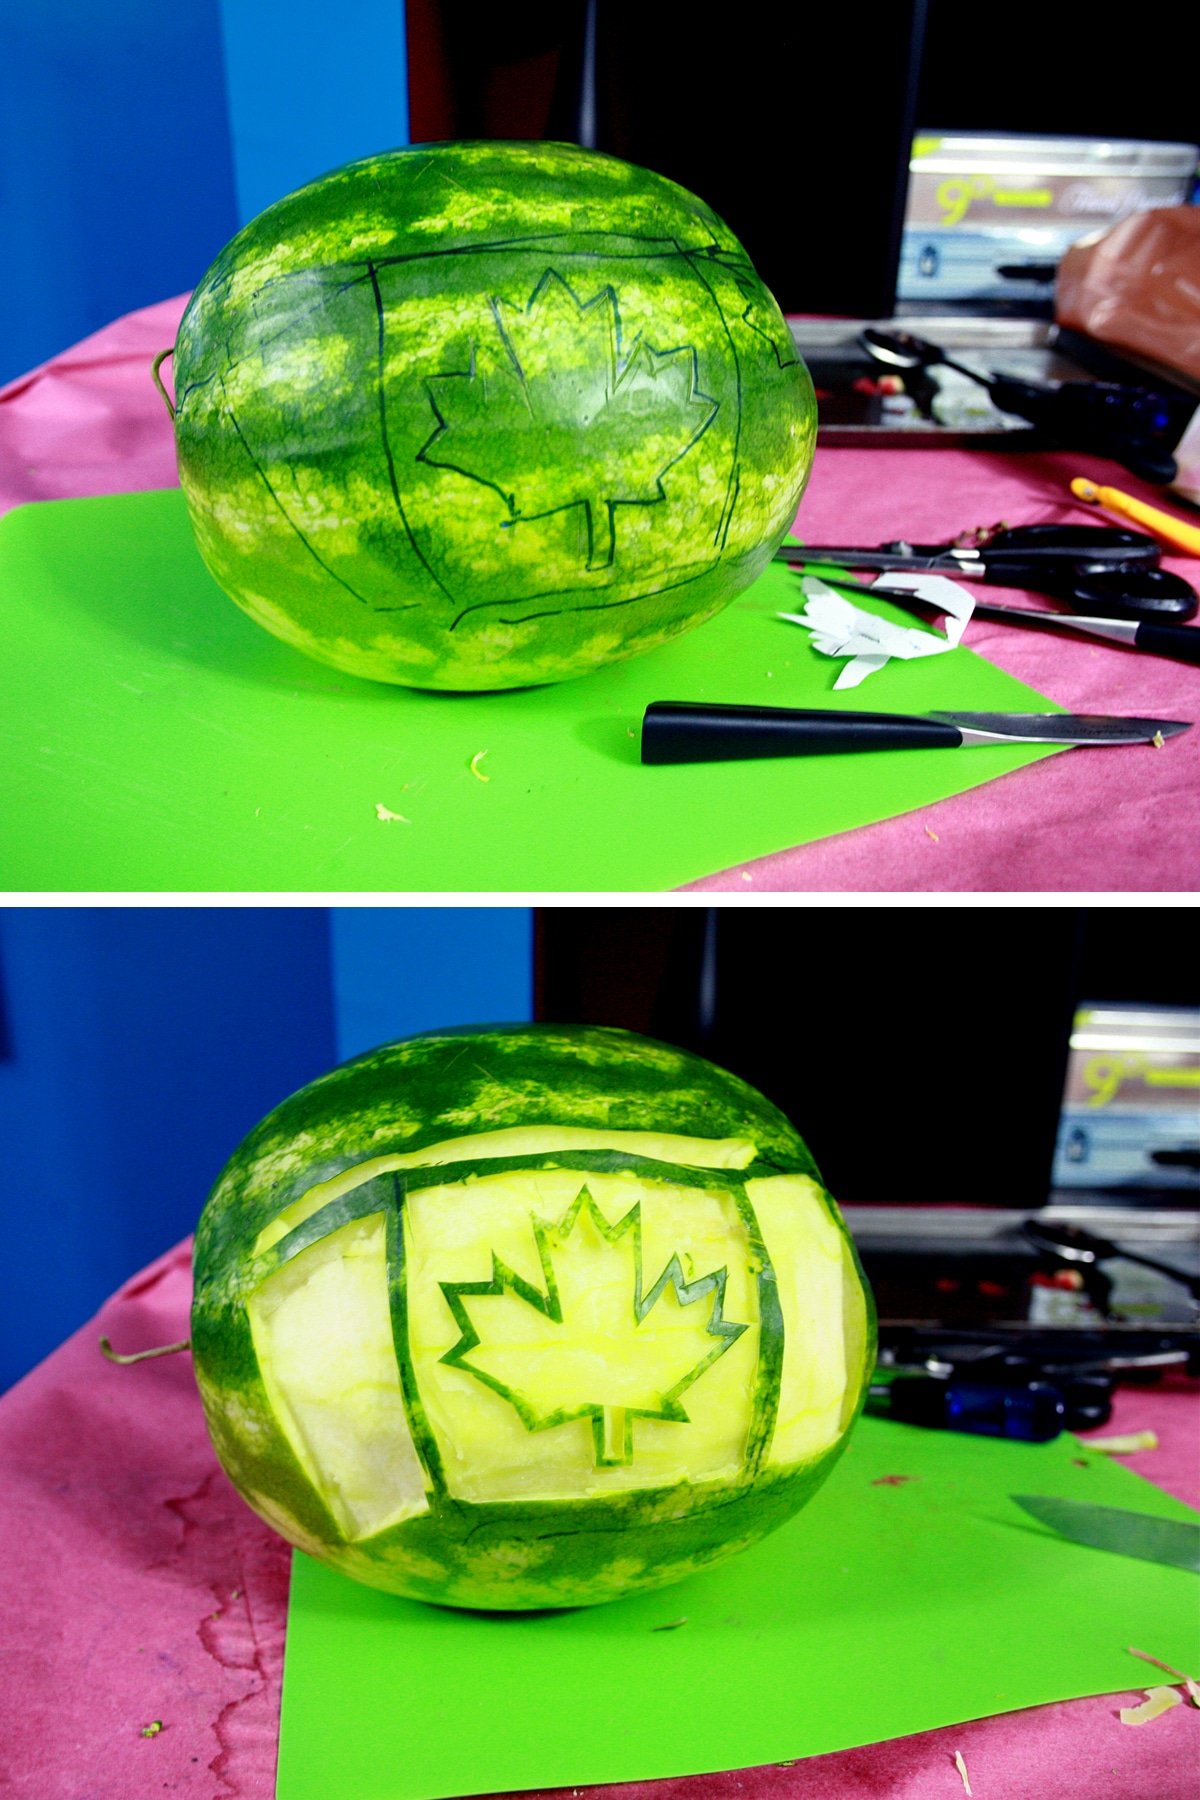 A two part image showing a Canadian flag drawn on the watermelon, then carved out of it.